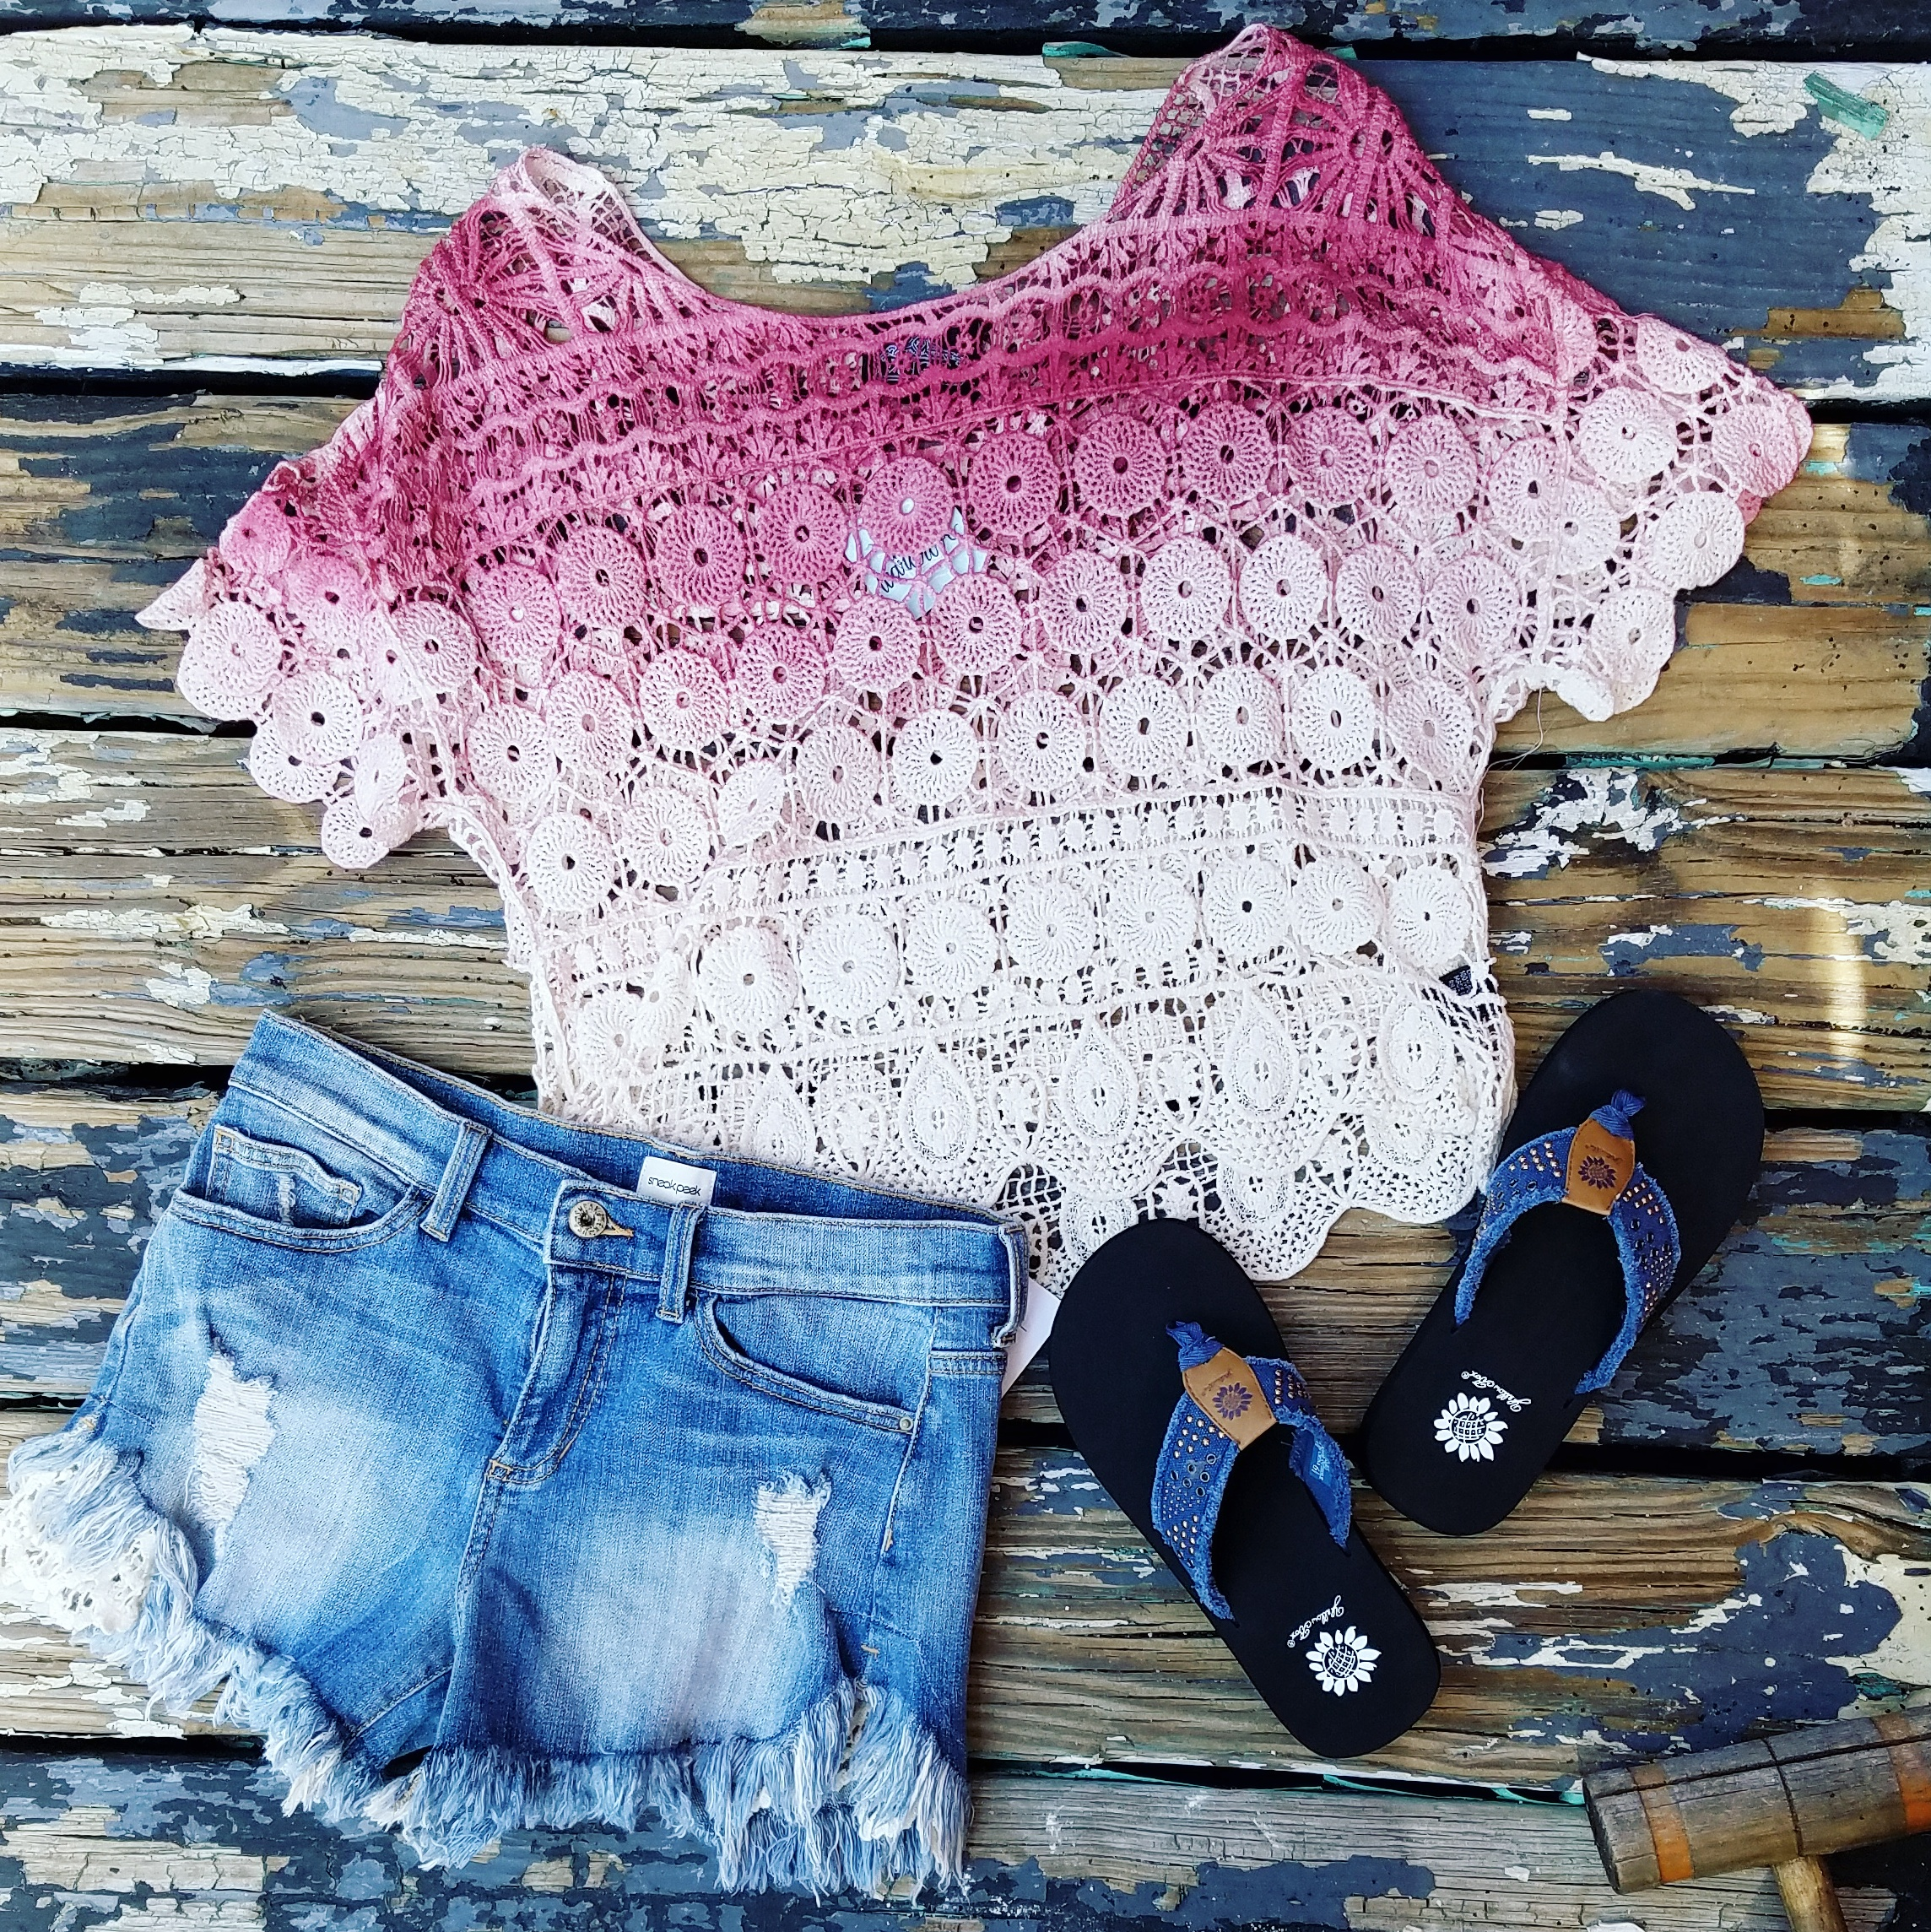 Everyone needs a good pair of cutoffs! If you haven't tried on a pair of Sneak Peek jeans yet, you MUST! Pair with this crocheted top over a bandeau and throw on your favorite sandals.